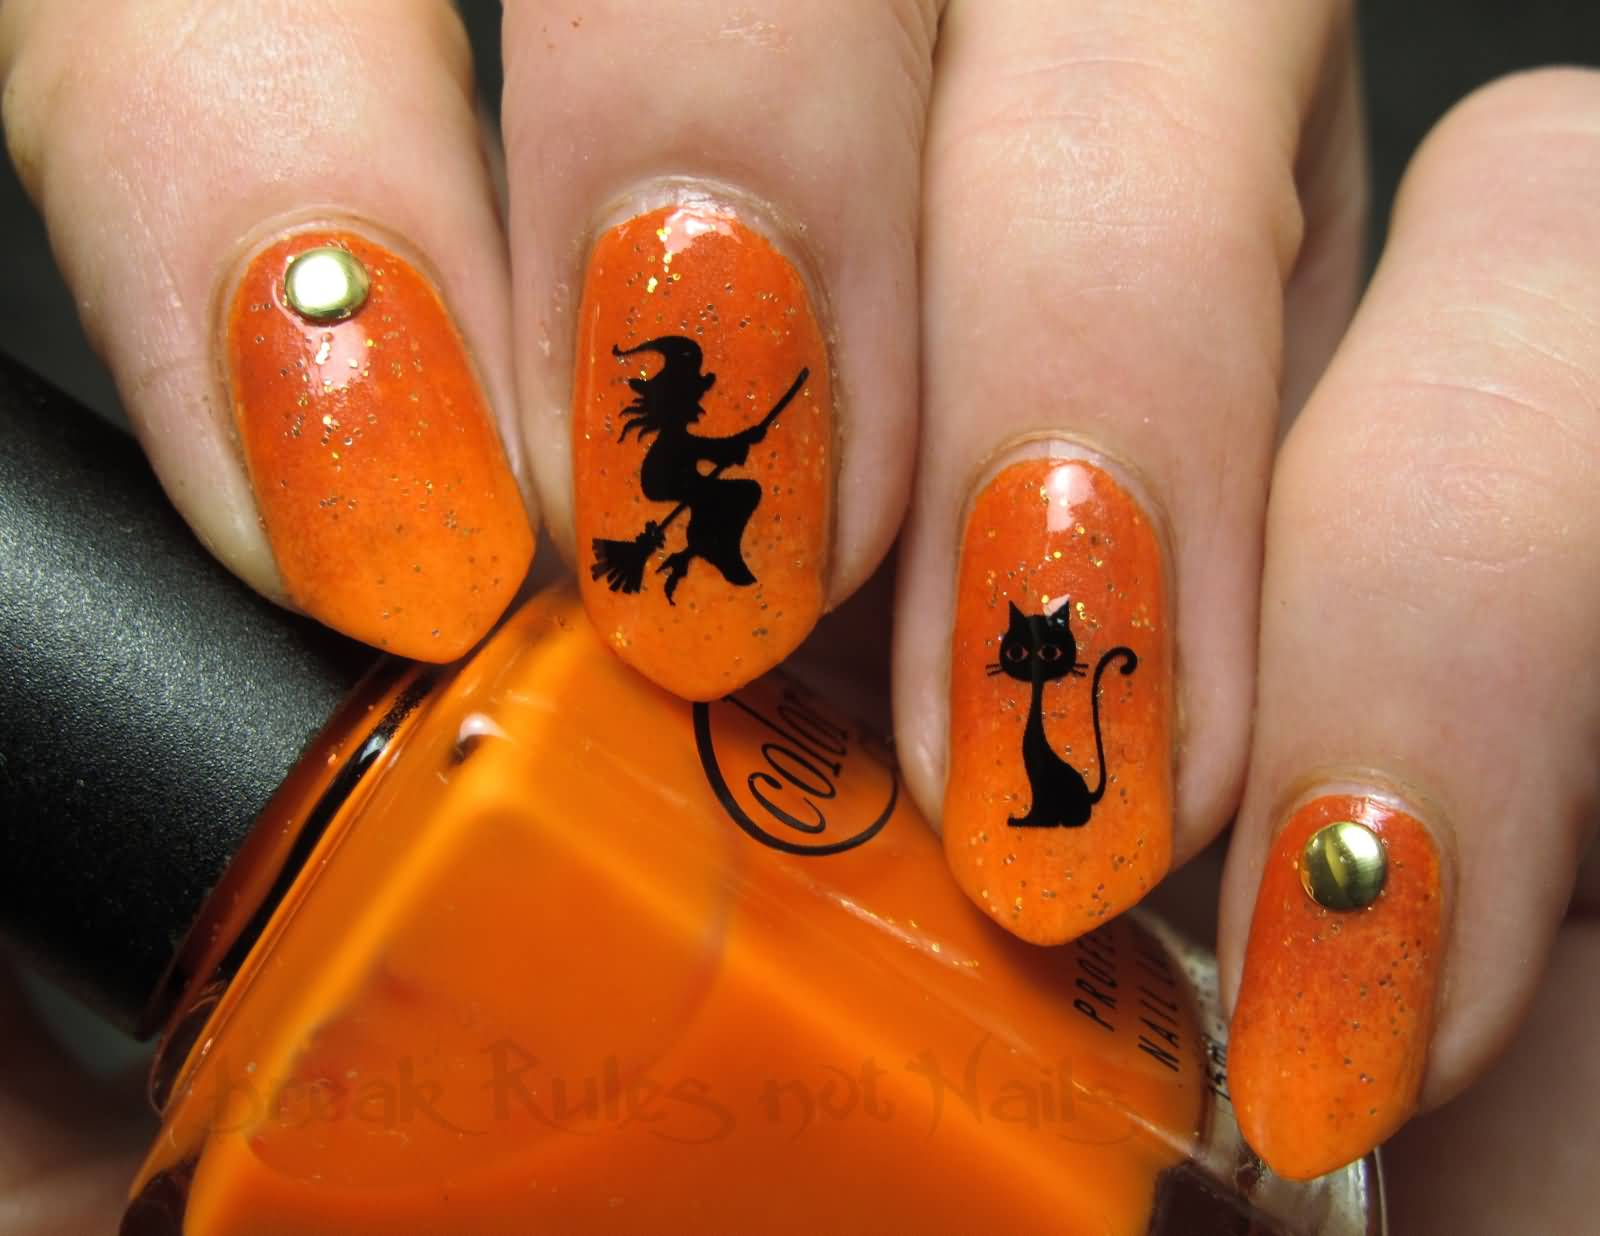 Orange Nails With Black Silhouette Cat And Witch Nail Art